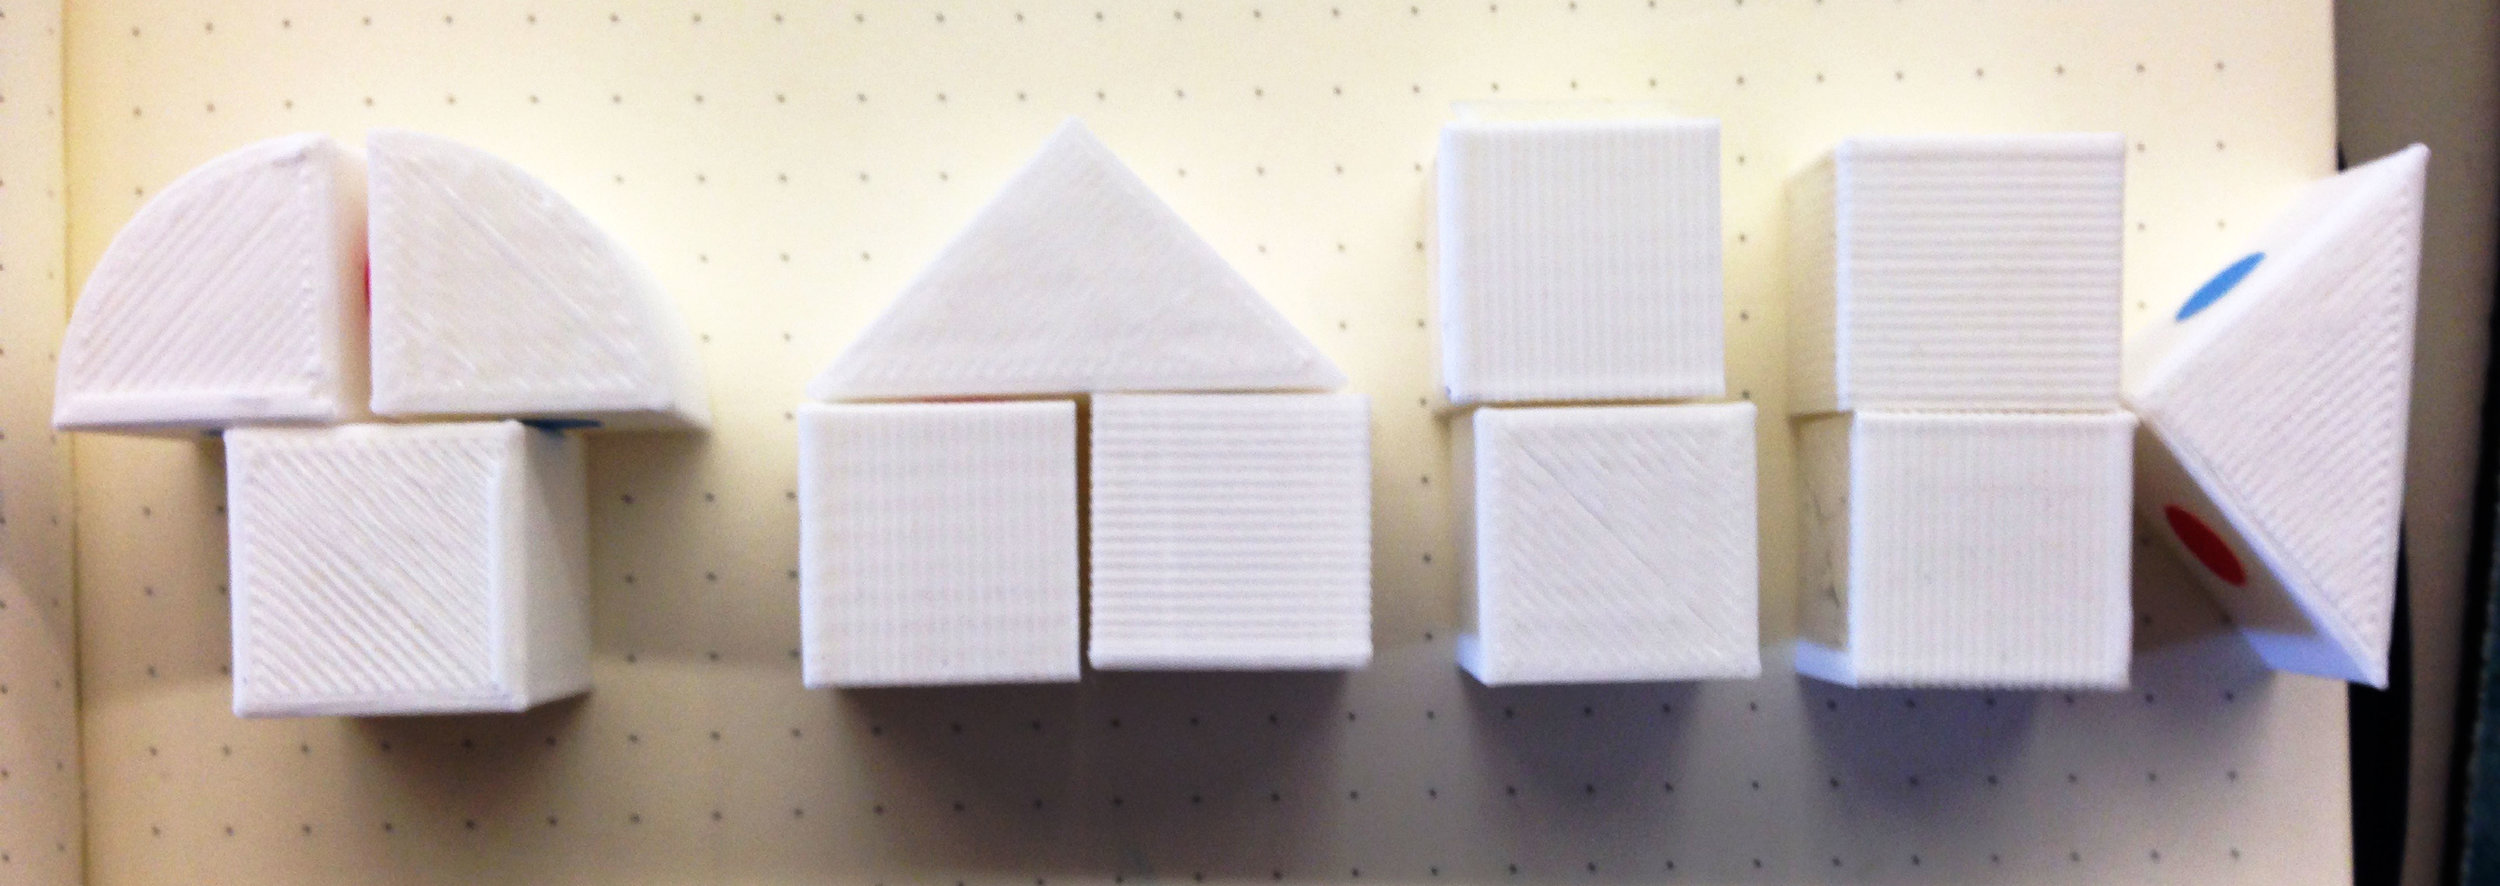 Exploring form with 3D printed modular blocks.